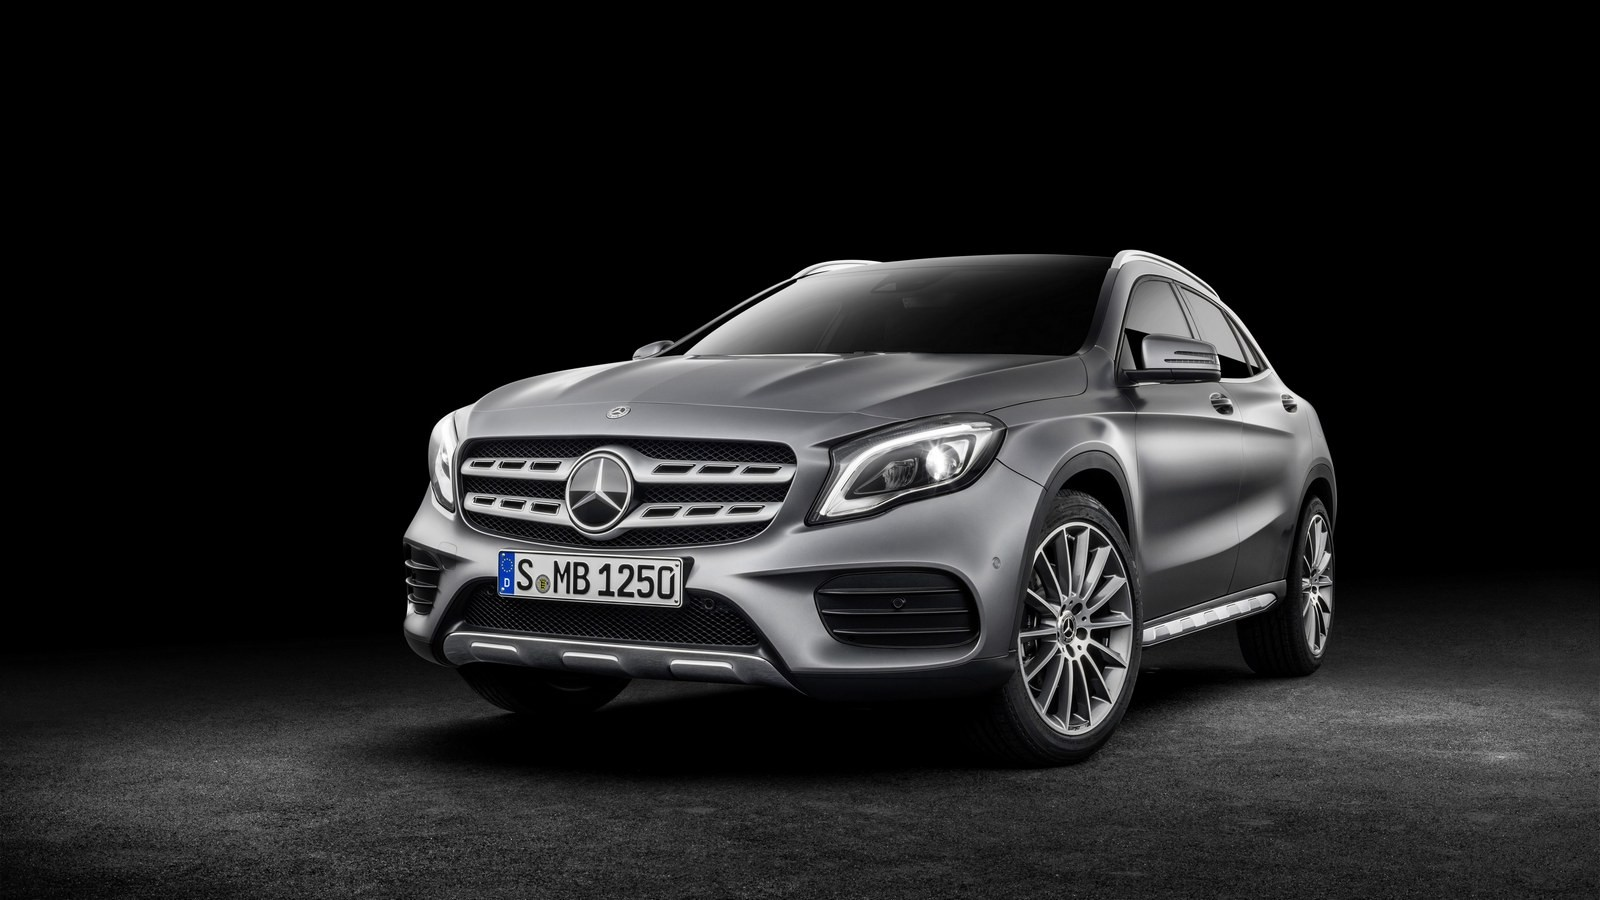 Mercedes-Benz GLA 250 4Matic AMG Line